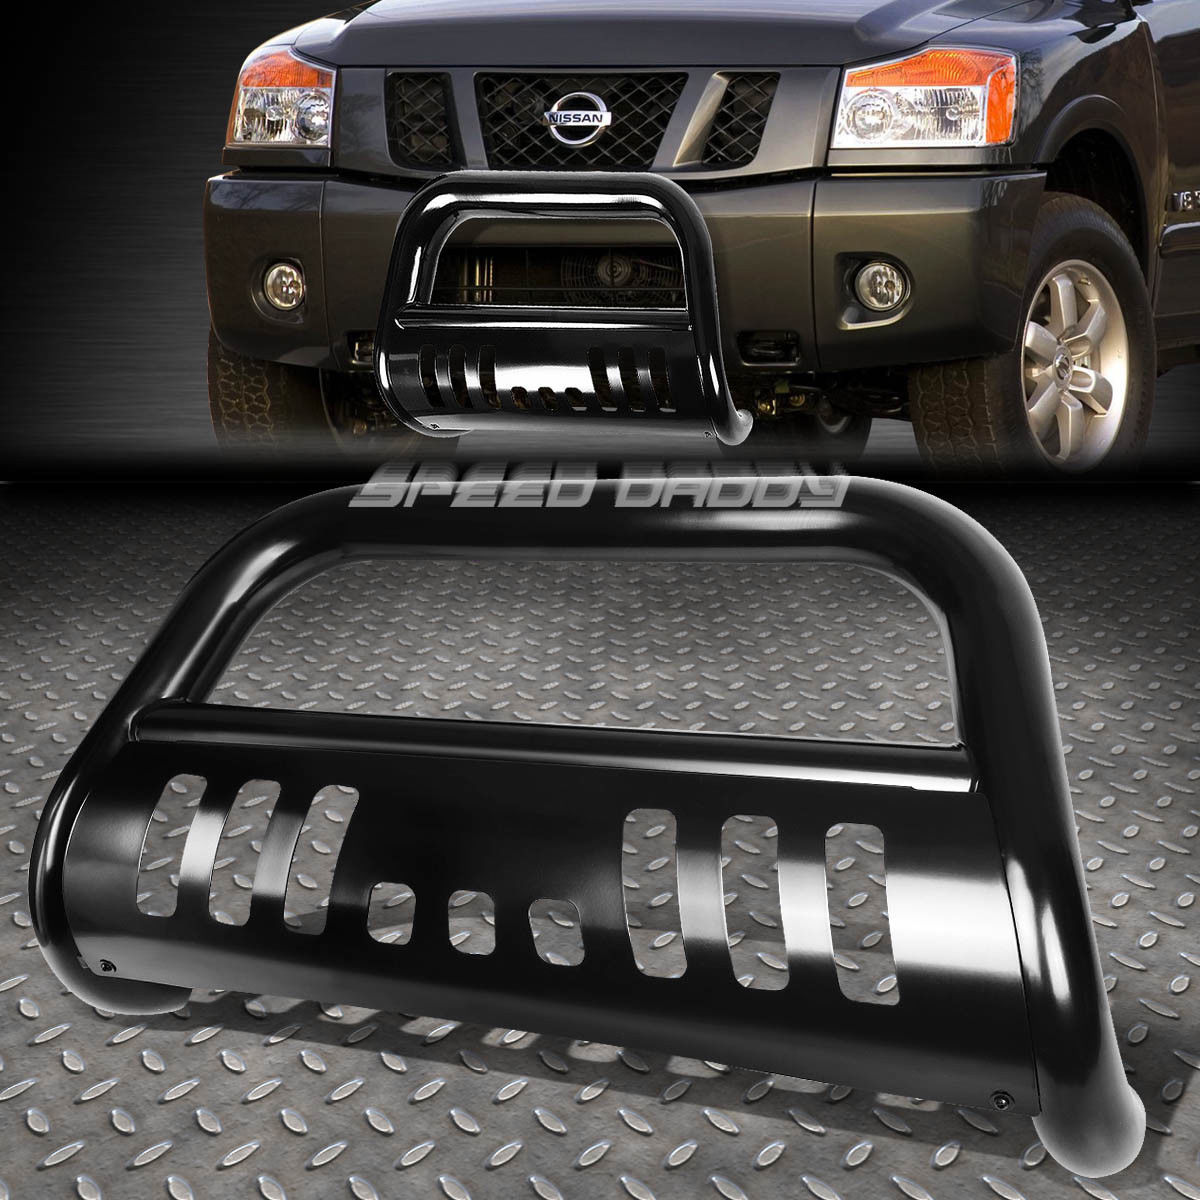 used for 05 16 nissan frontier pathfinder black 3 bull bar push bumper grille guard 2018 mycarboard com bull bar push bumper grille guard 2018